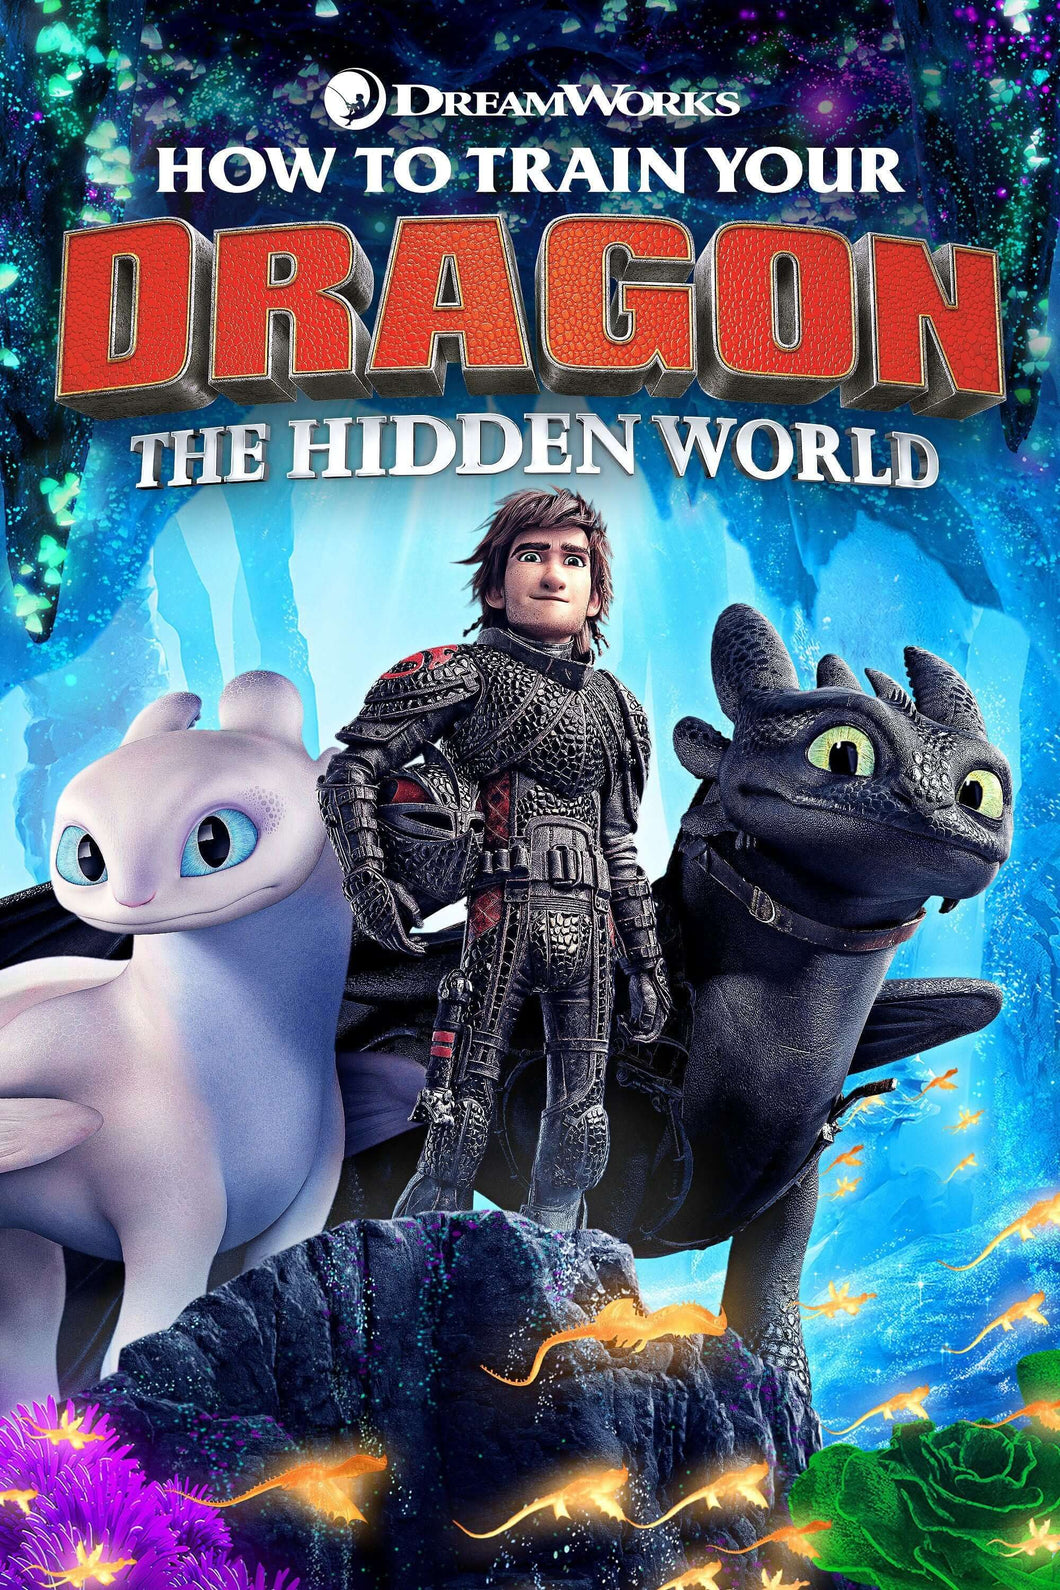 How to Train Your Dragon 3: The Hidden World | HD Movies Anywhere Code Ports to Vudu, iTunes - Movie Sometimes